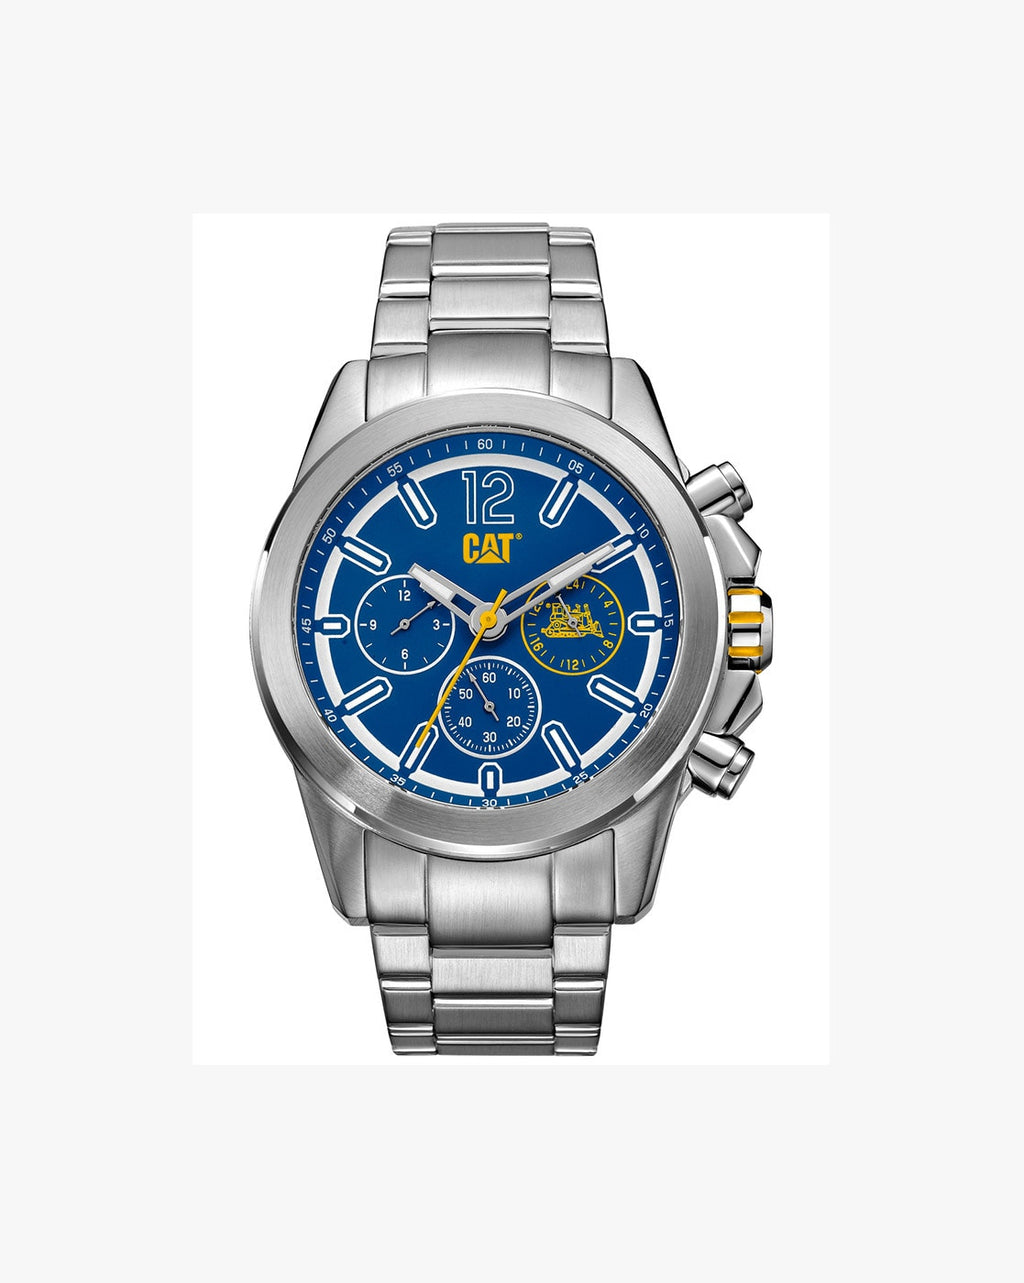 YU.149.11.637 Chronograph Watch with Contrast Dial